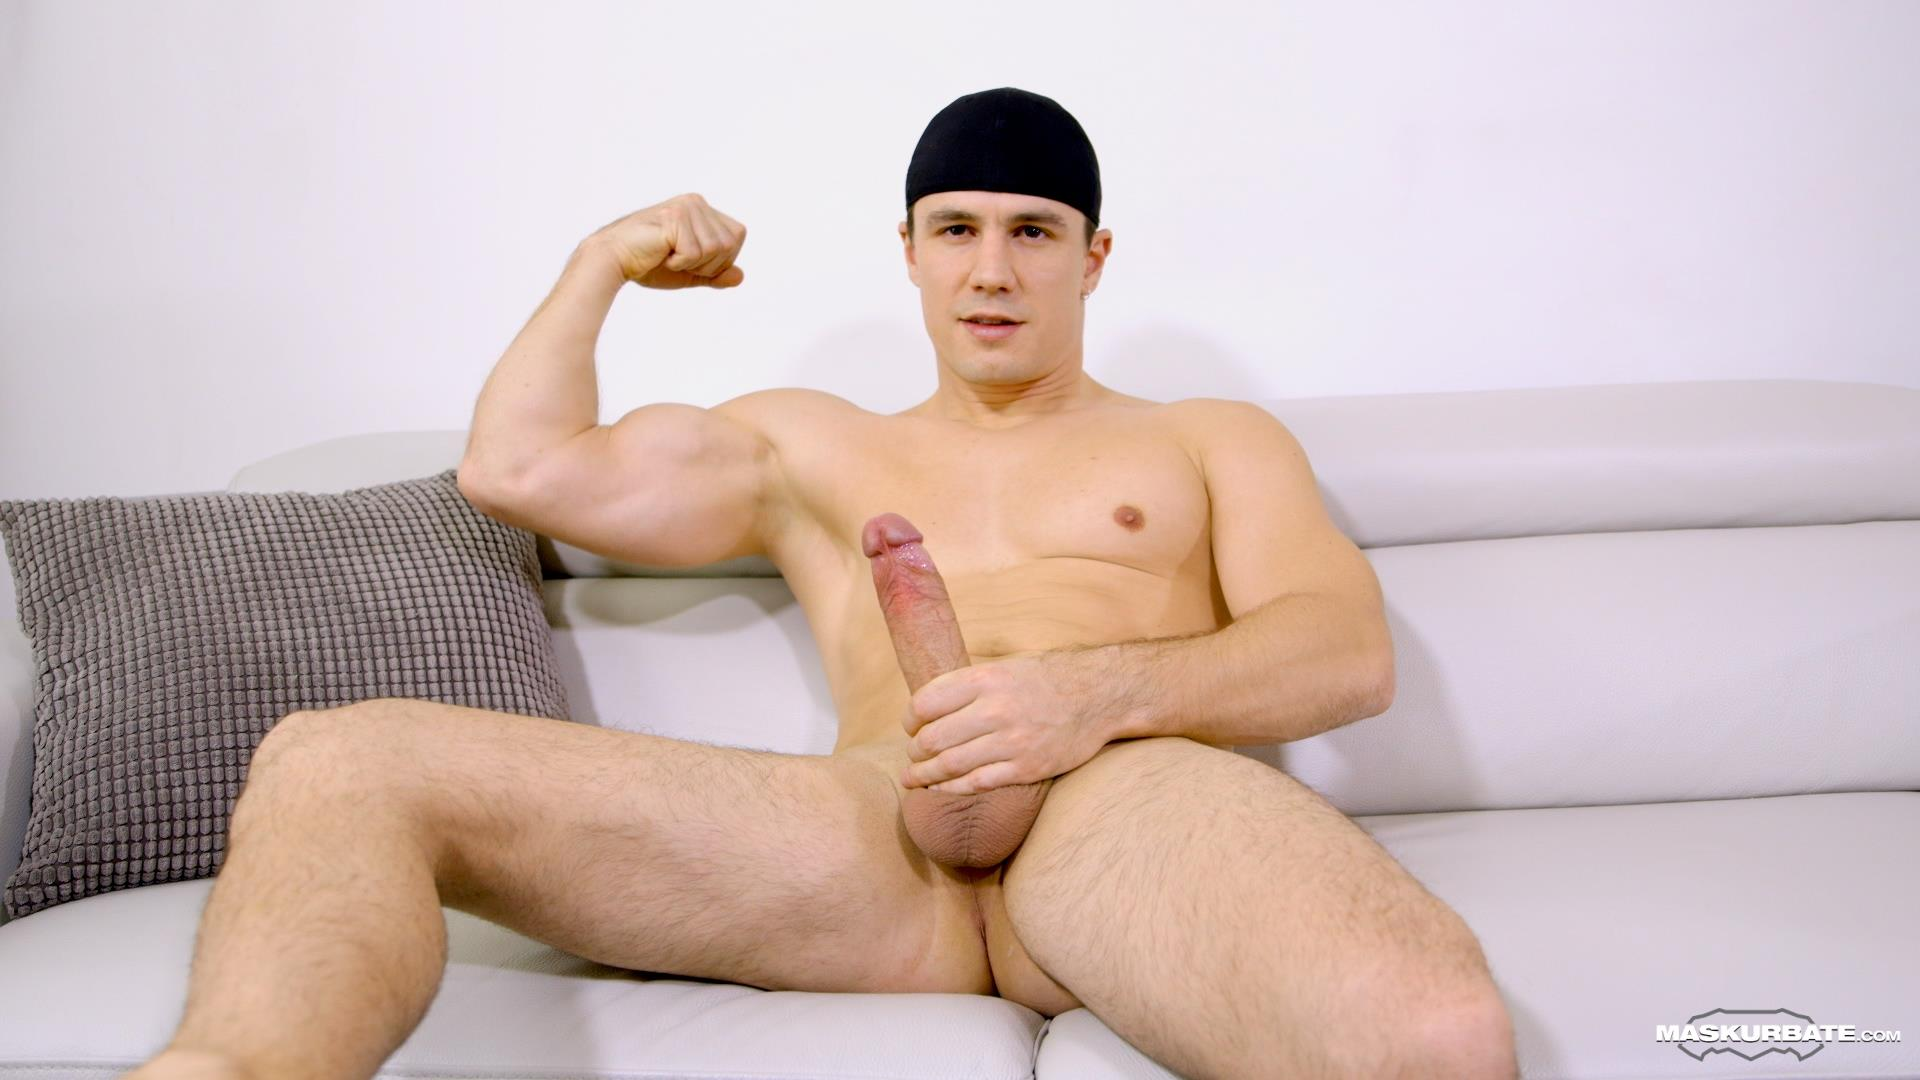 Maskurbate Ricky Muscl Jock Stroking His Big Uncut Cock Amateur Gay Porn 10 Smooth Muscle Jock Stroking His Big Uncut Cock